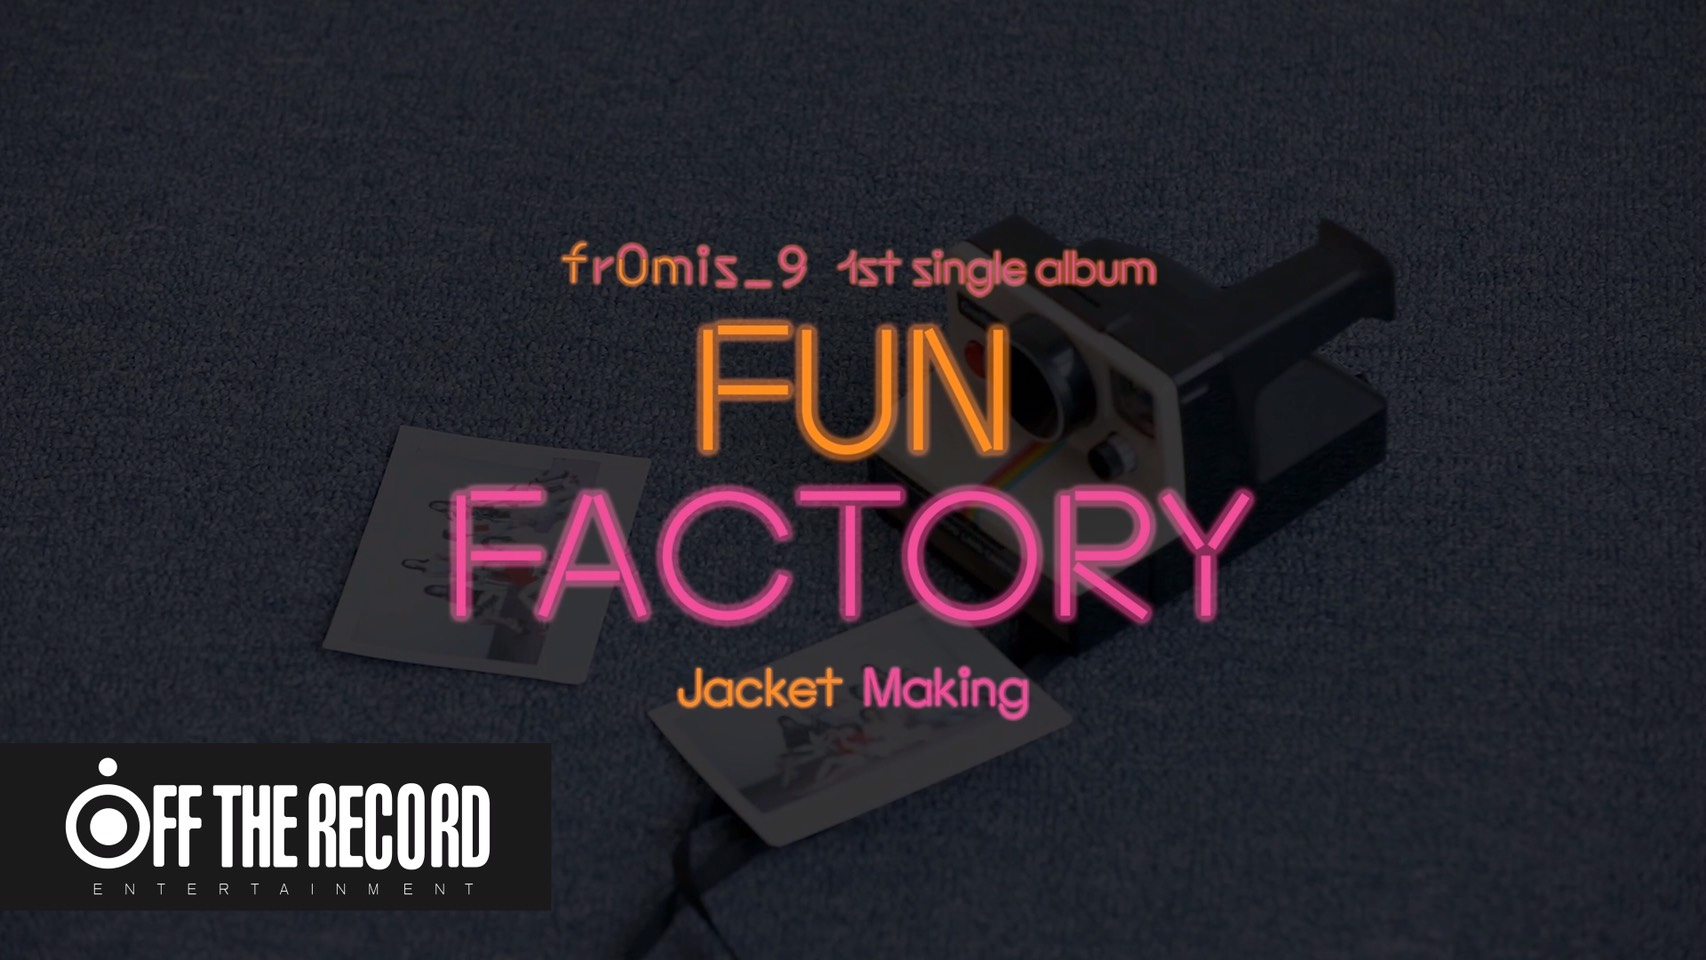 프로미스나인 (fromis_9) - 1ST SINGLE ALBUM 'FUN FACTORY' Jacket Making